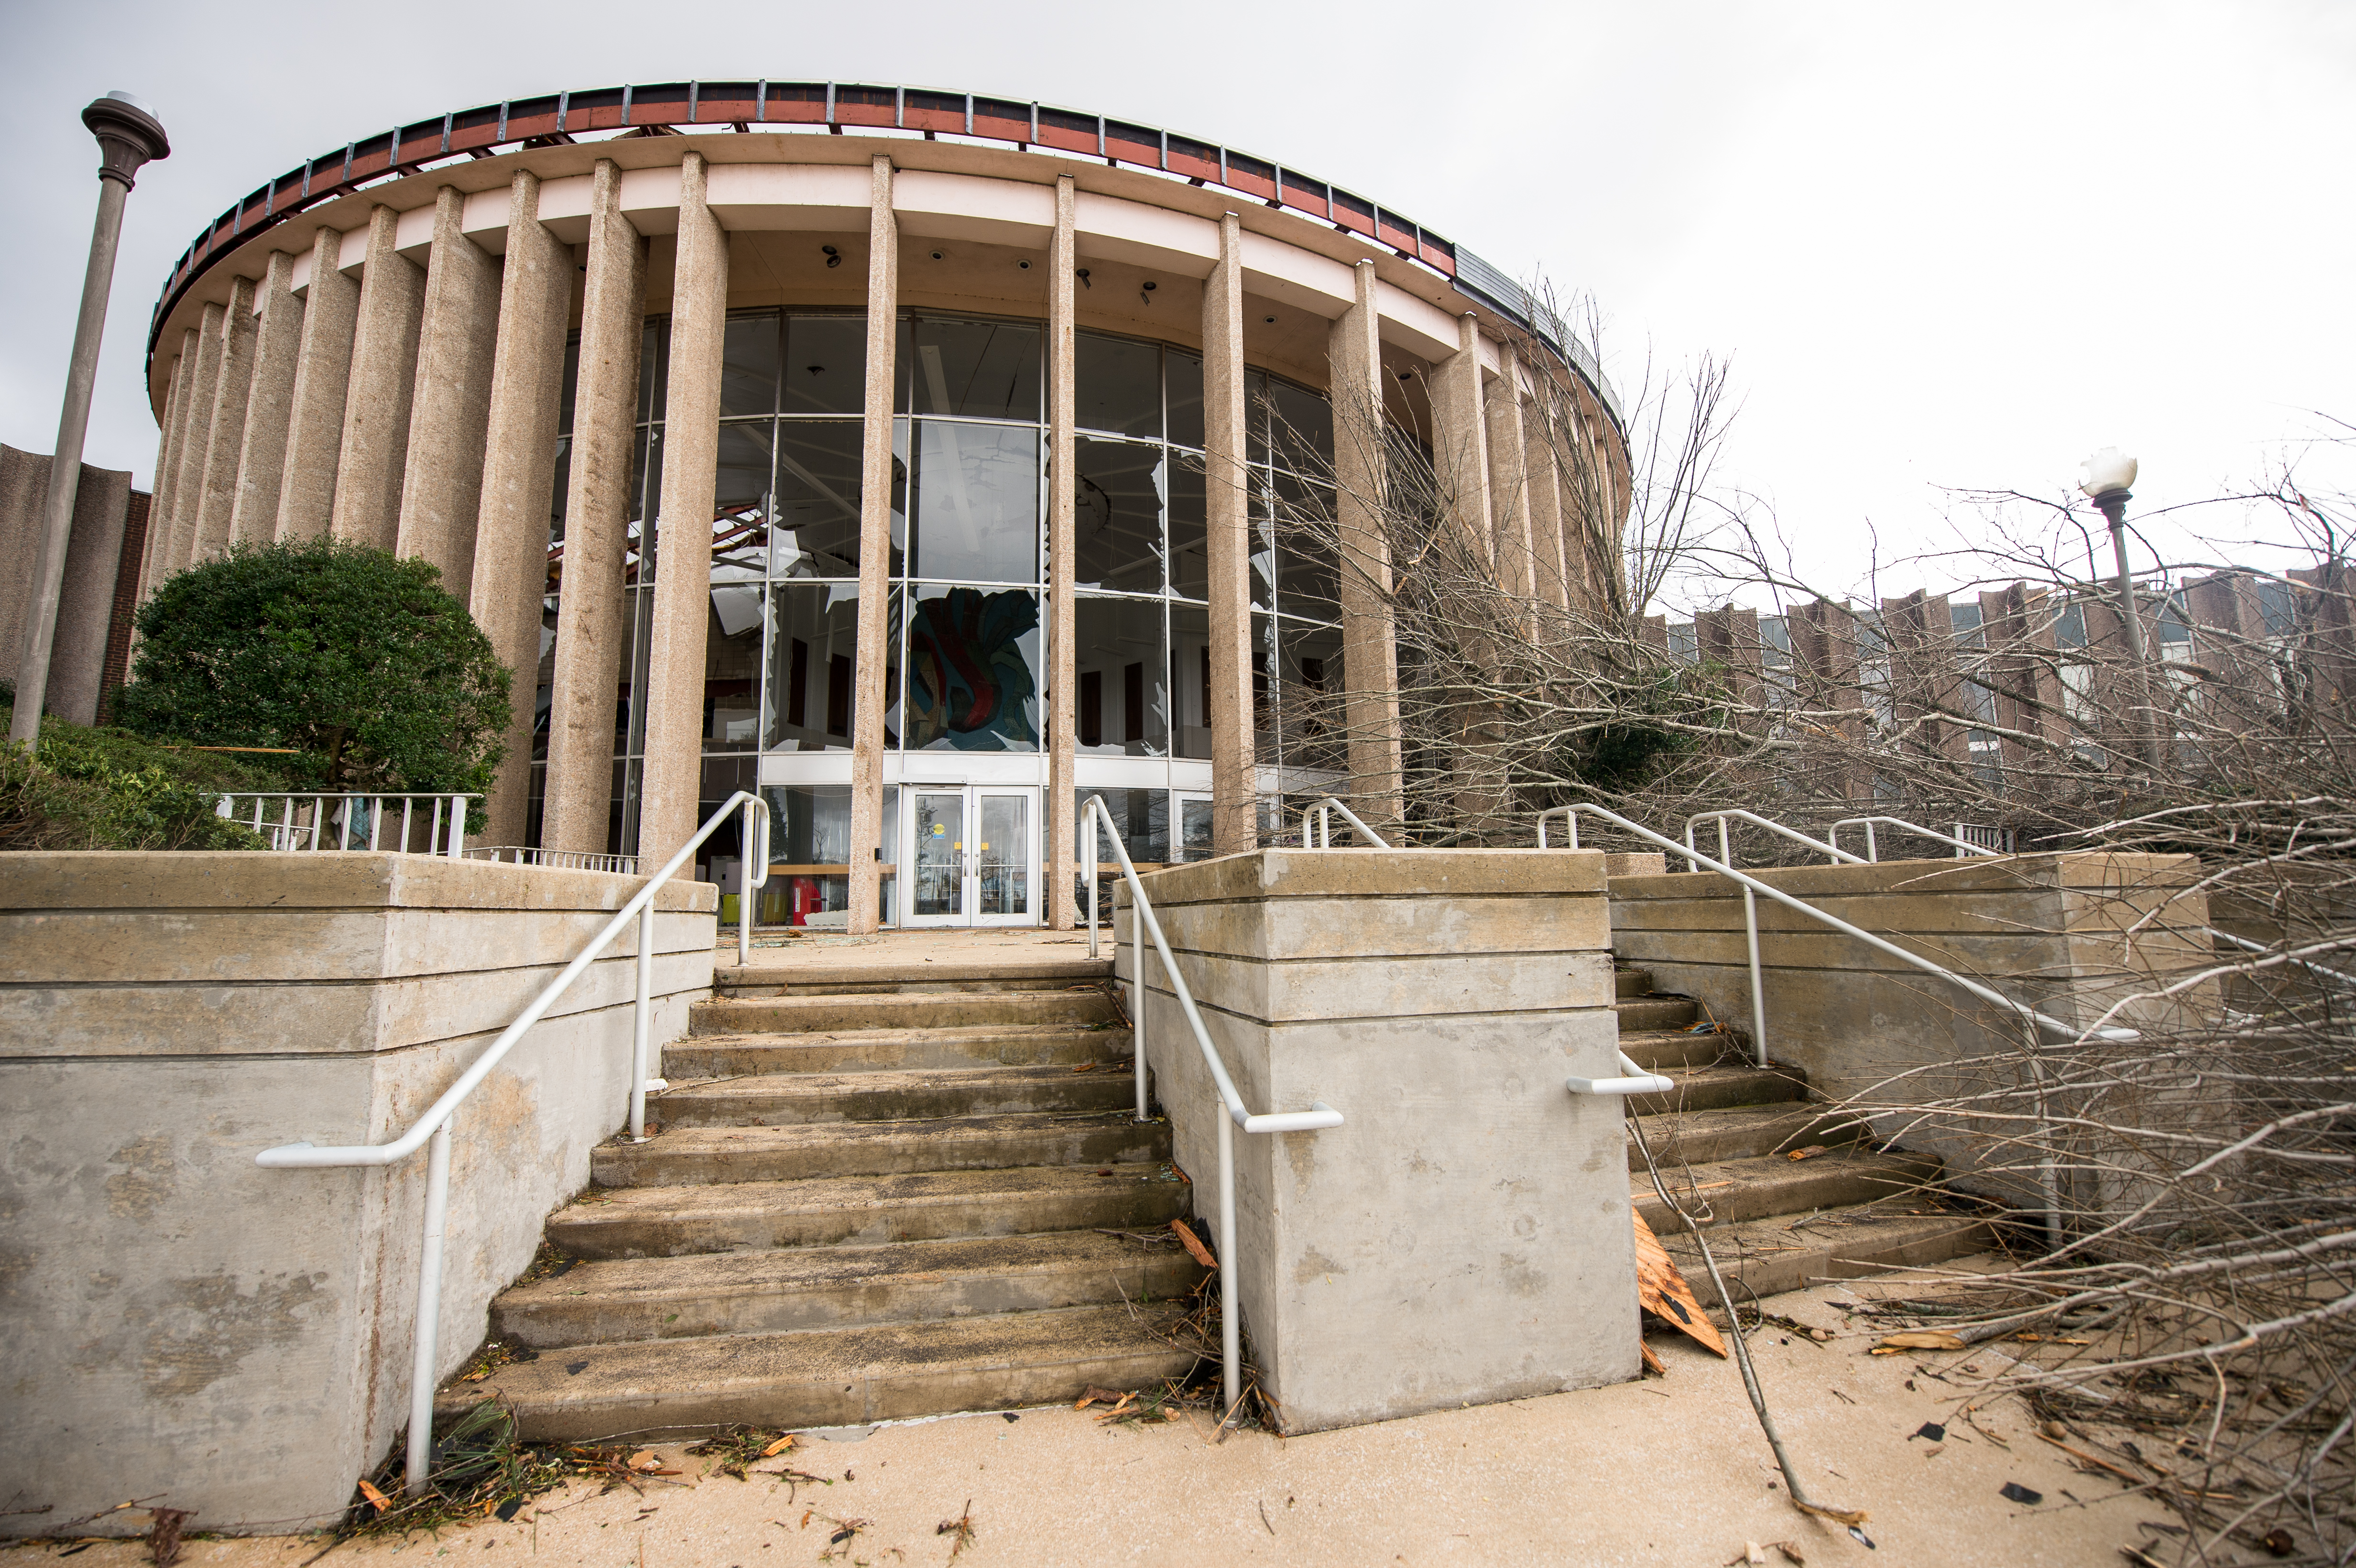 Pictured is the damage at Merrill Hall shortly after the devastating EF-3 tornado that affected Jacksonville State University and the city of Jacksonville on March 19, 2018. (Matt Reynolds/JSU)